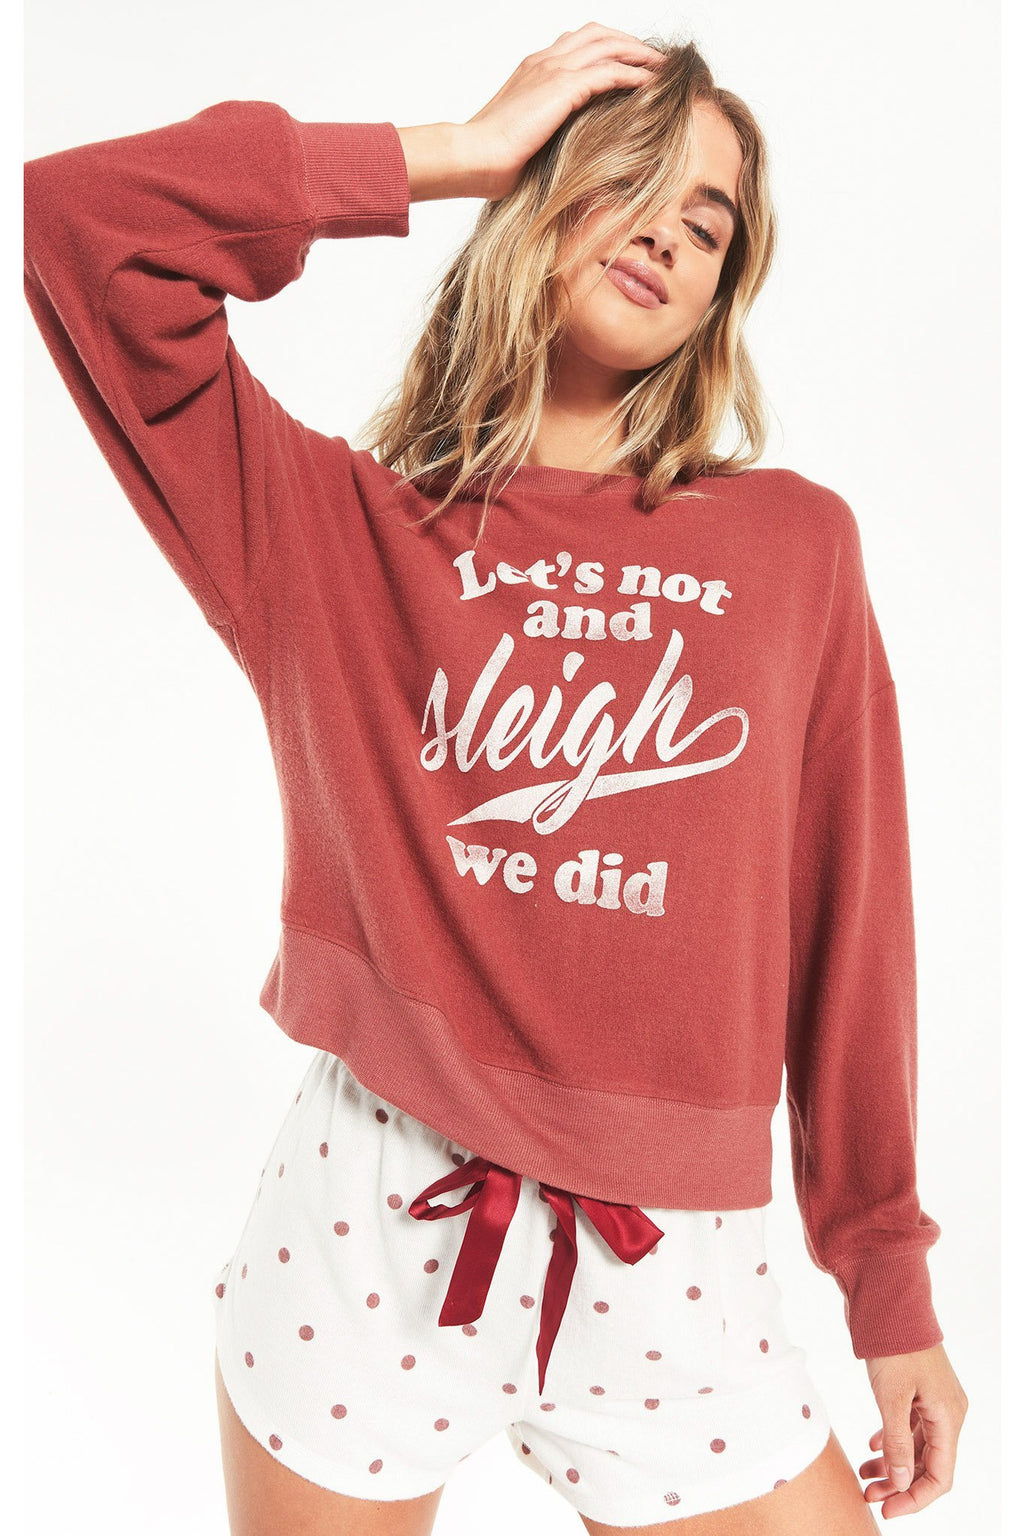 Elle Sleigh We Did Sweatshirt